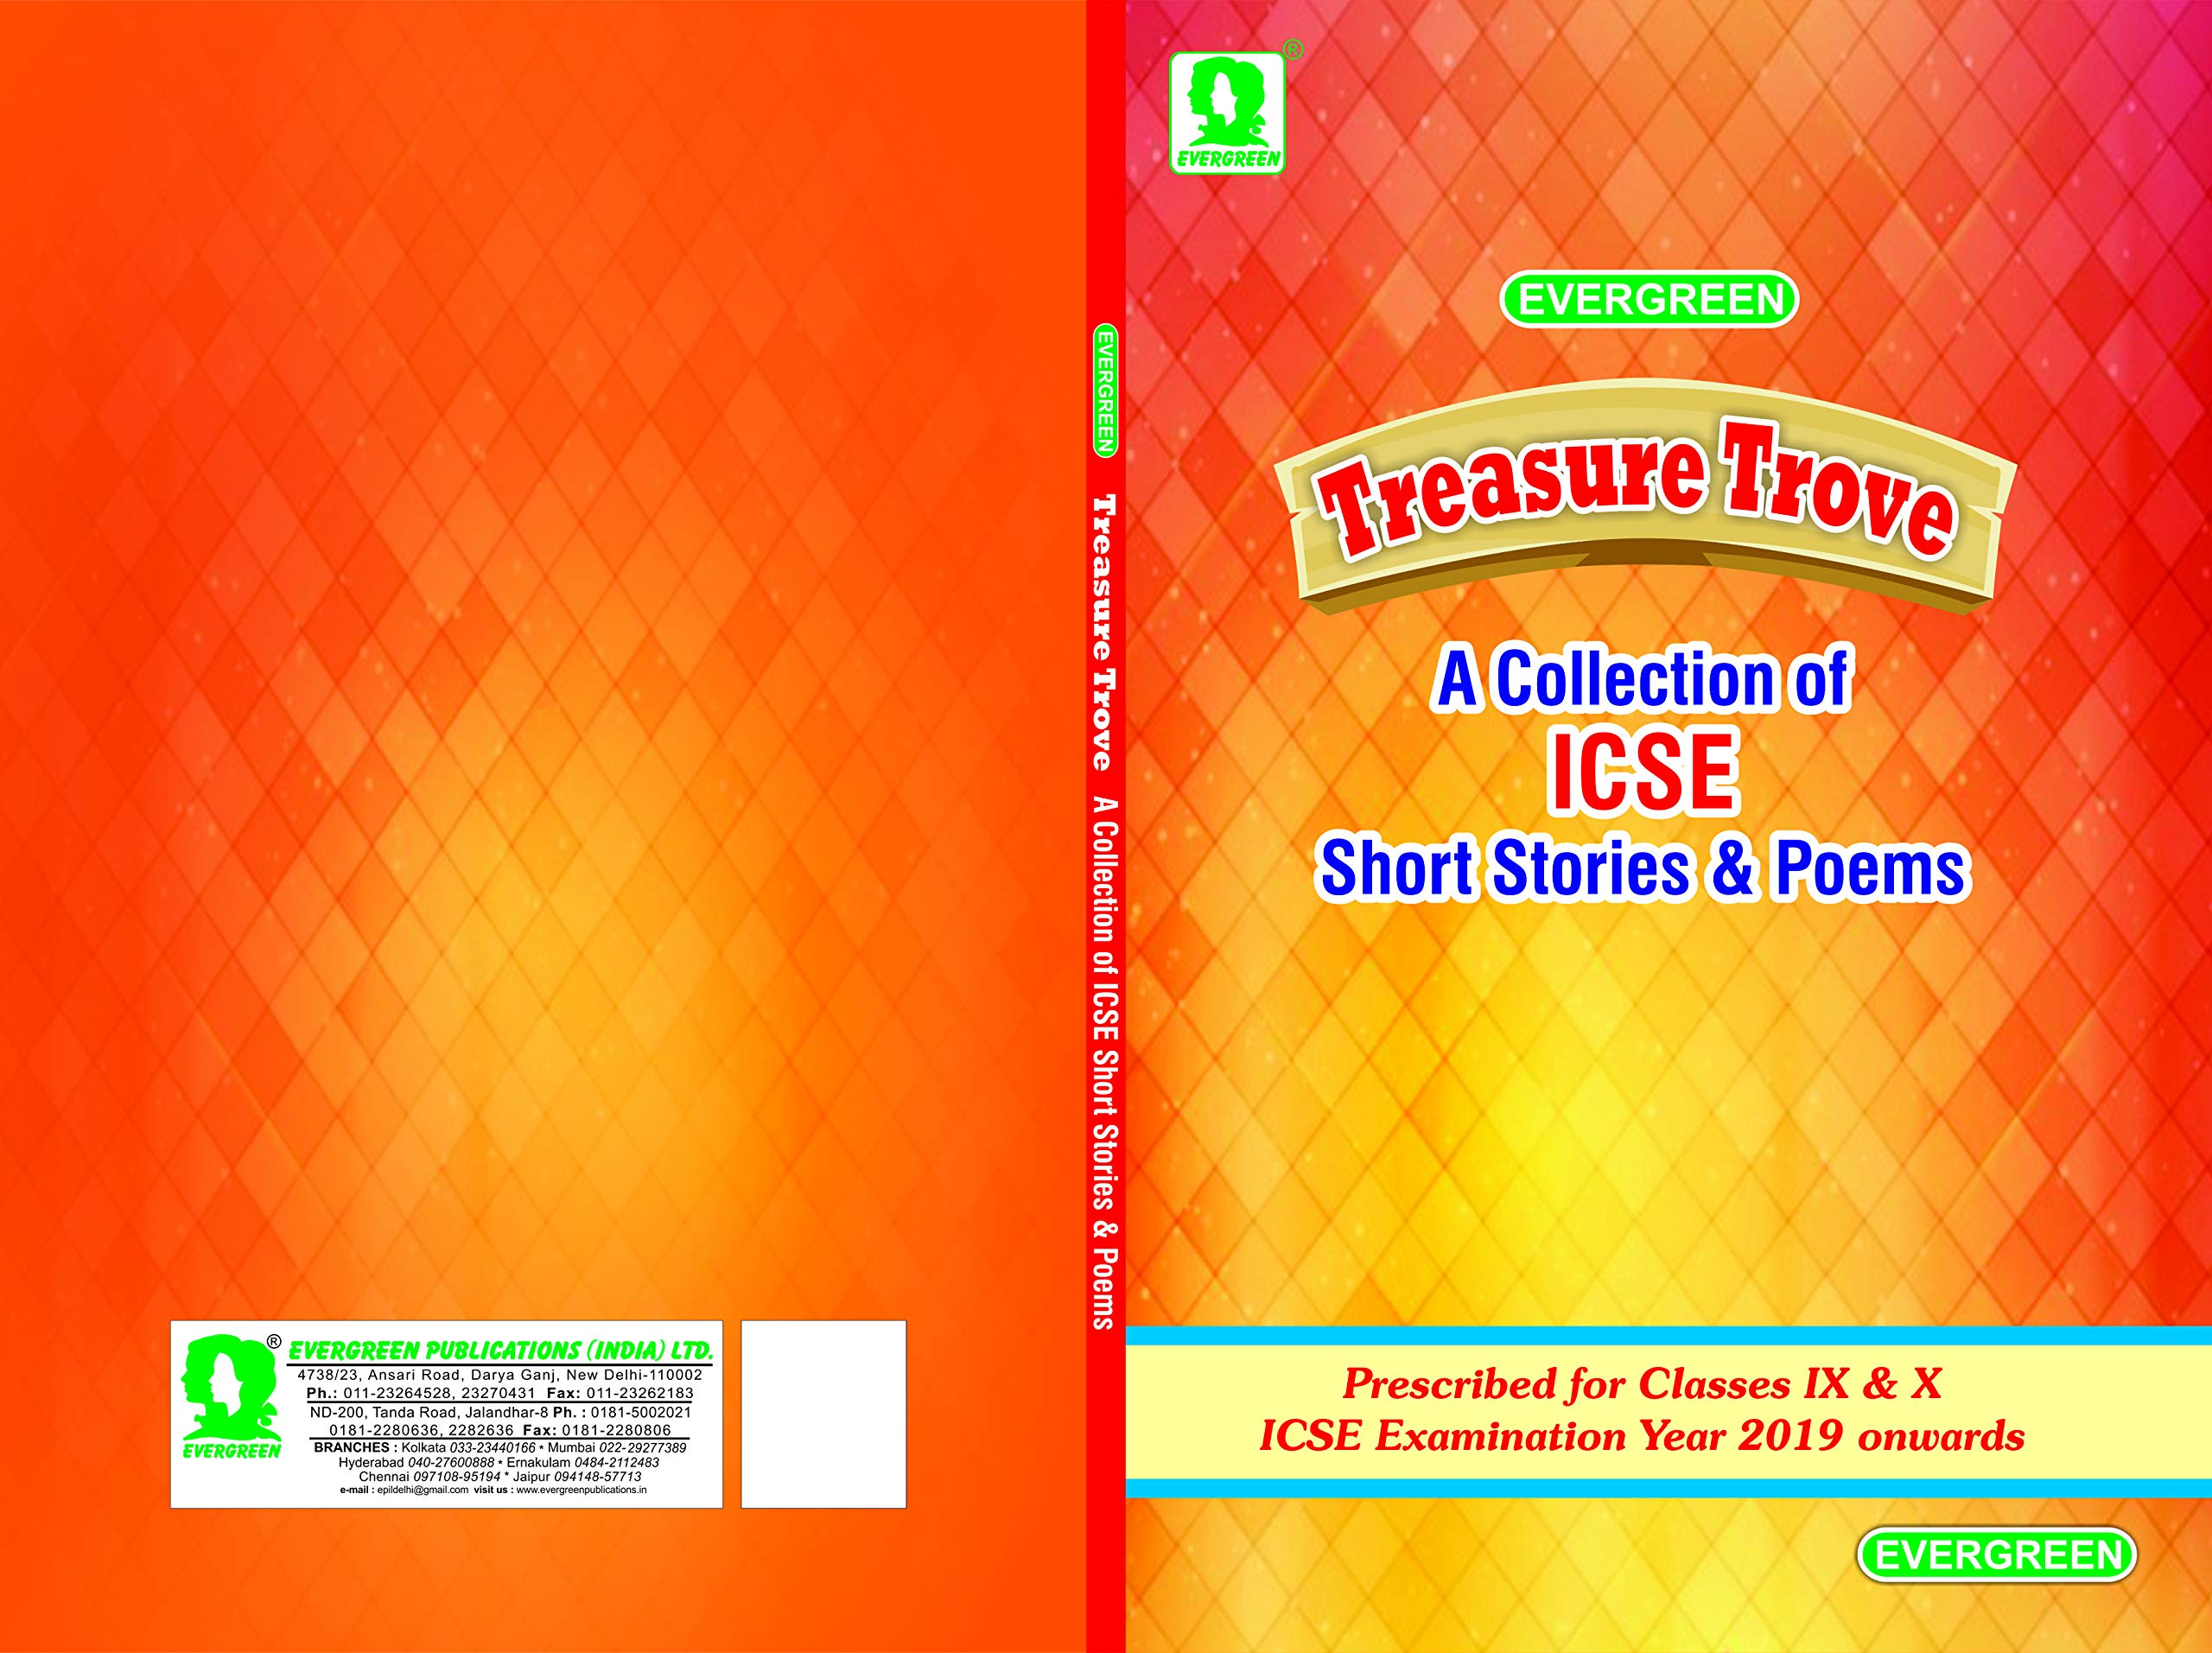 Trove Best Class 2021 Amazon.in: Buy Treasure Trove (A collection of ICSE Poems and